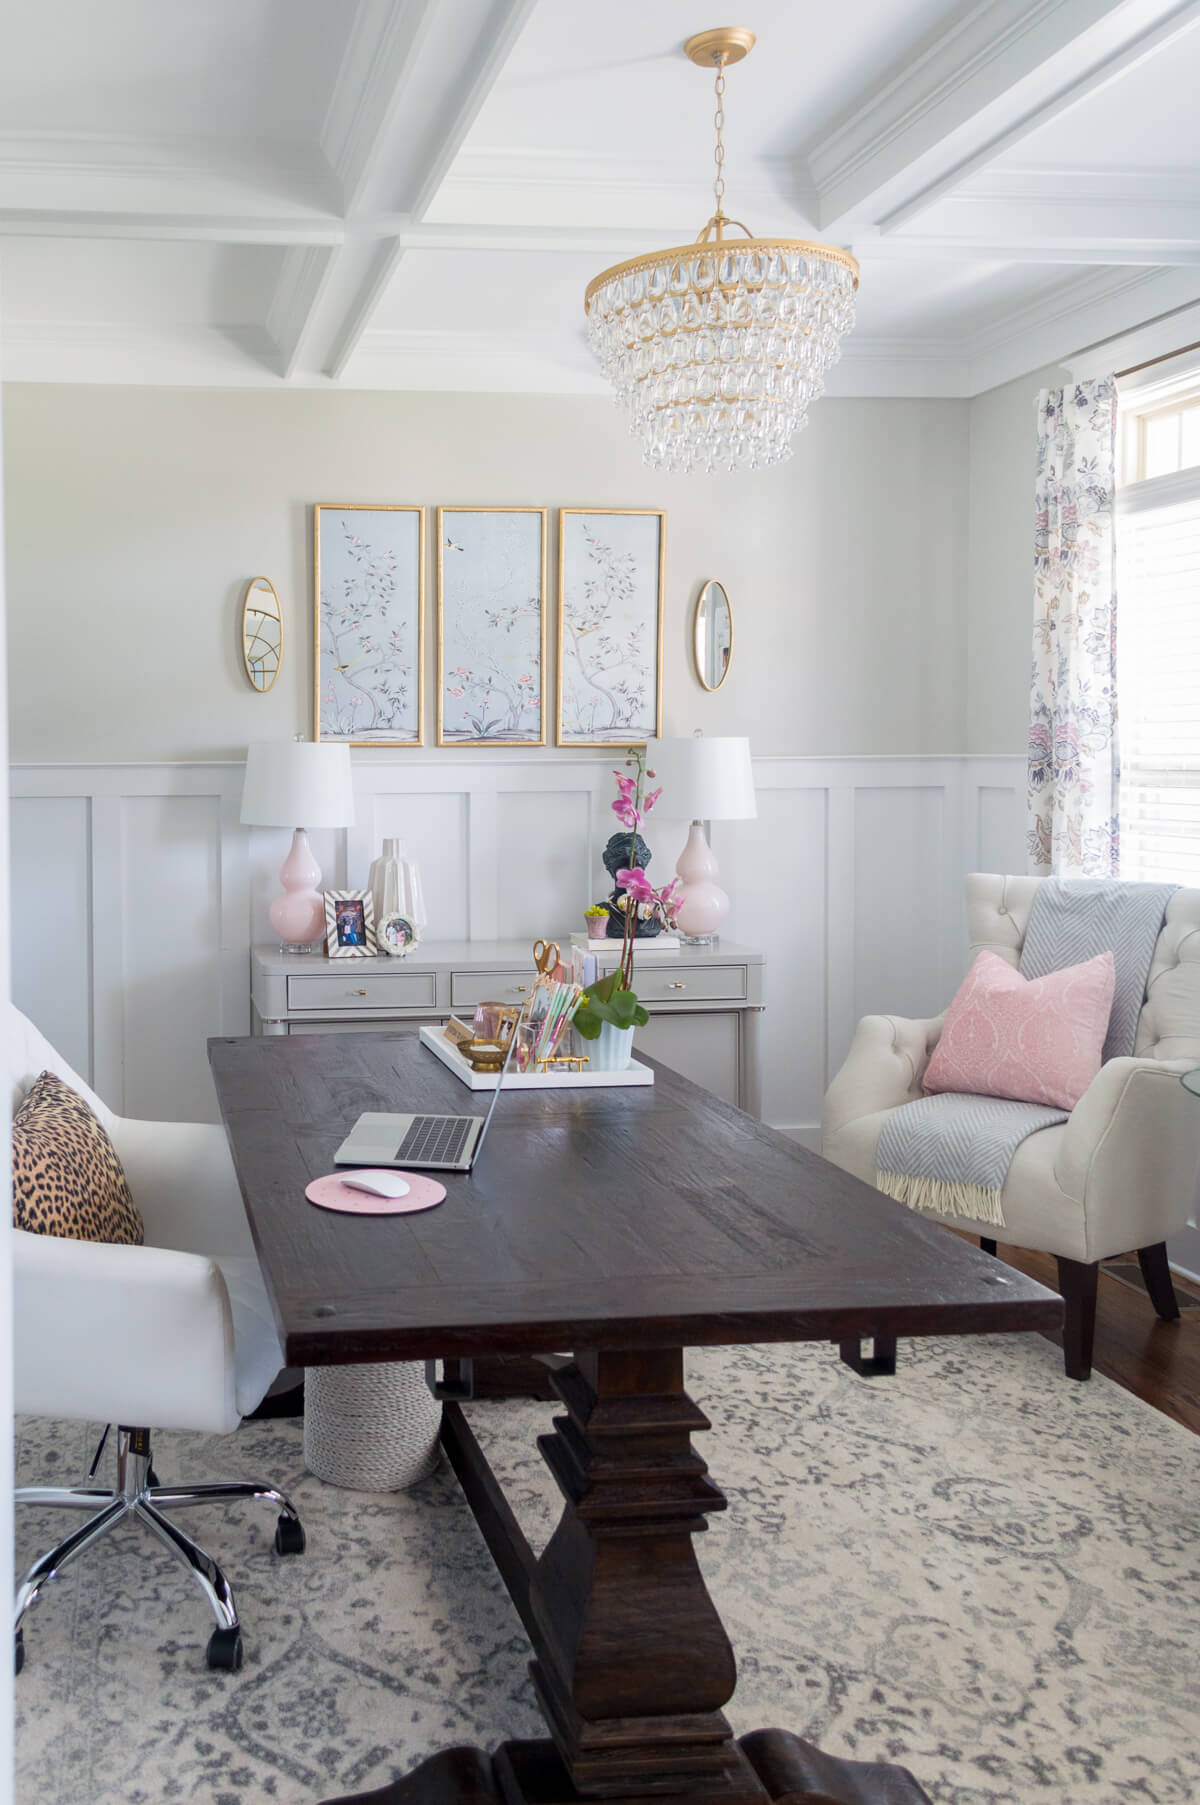 Chic and girly home office with farmhouse trestle table, DIY Gold chandelier, tufted arm chair.